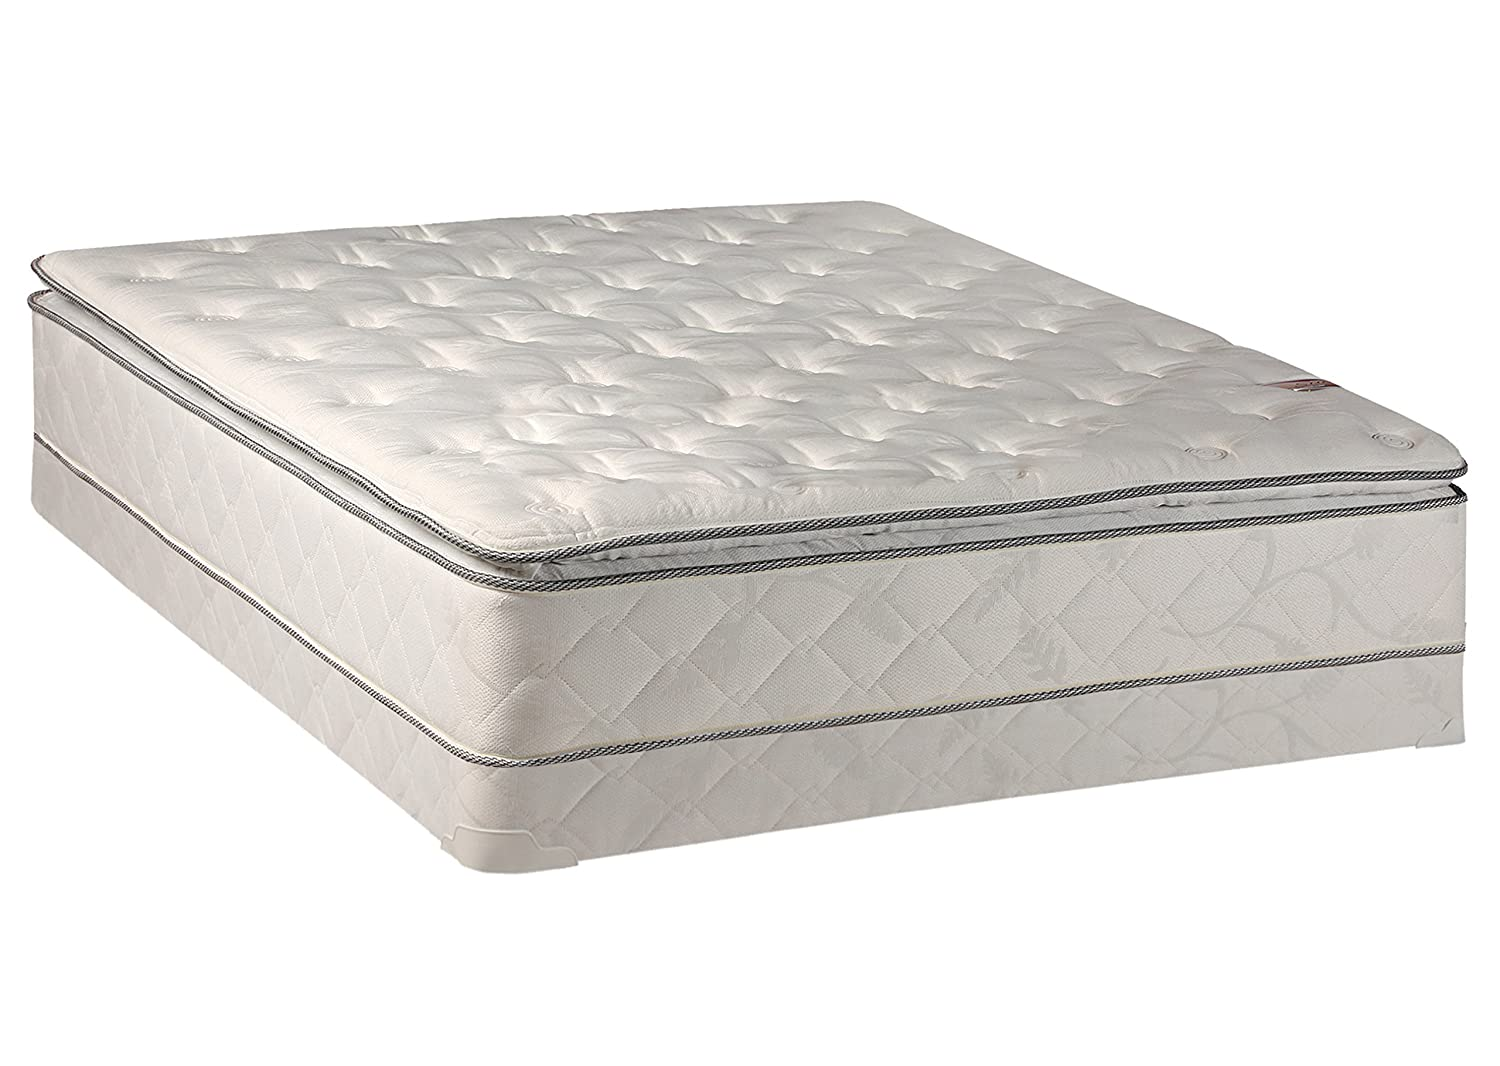 Continental Sleep, 10-Inch Medium Plush Pillowtop Innerspring Mattress and 4-inch Box Spring/Foundation Set, No Assembly Required, Twin Size